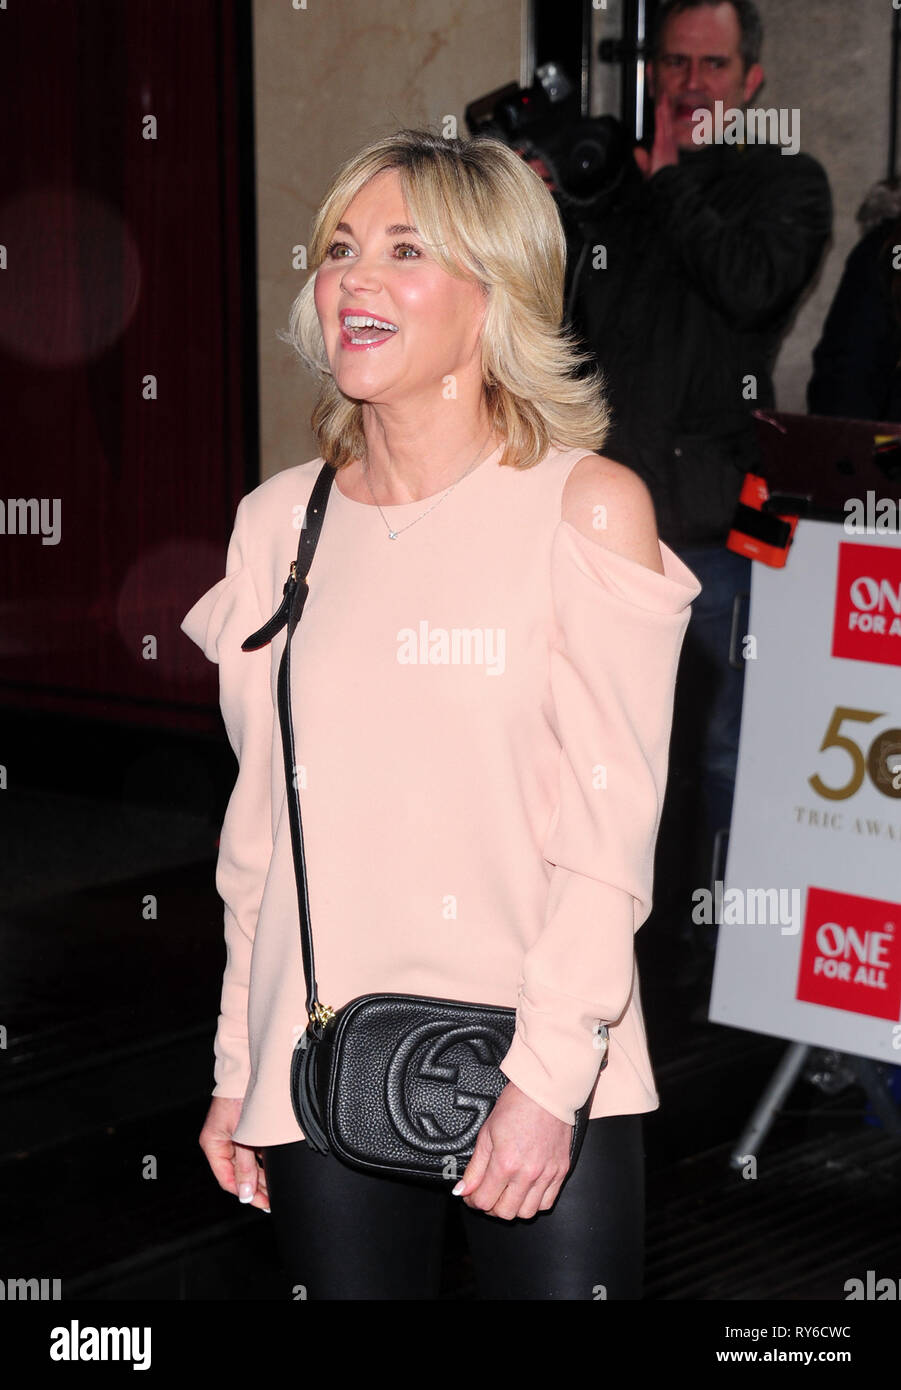 London, UK. 12th Mar, 2019. Anthea Turner attending The TRIC Awards 50th Anniversary 2019 at The Grosvenor House Hotel London 12th March 2019 Credit: Peter Phillips/Alamy Live News - Stock Image